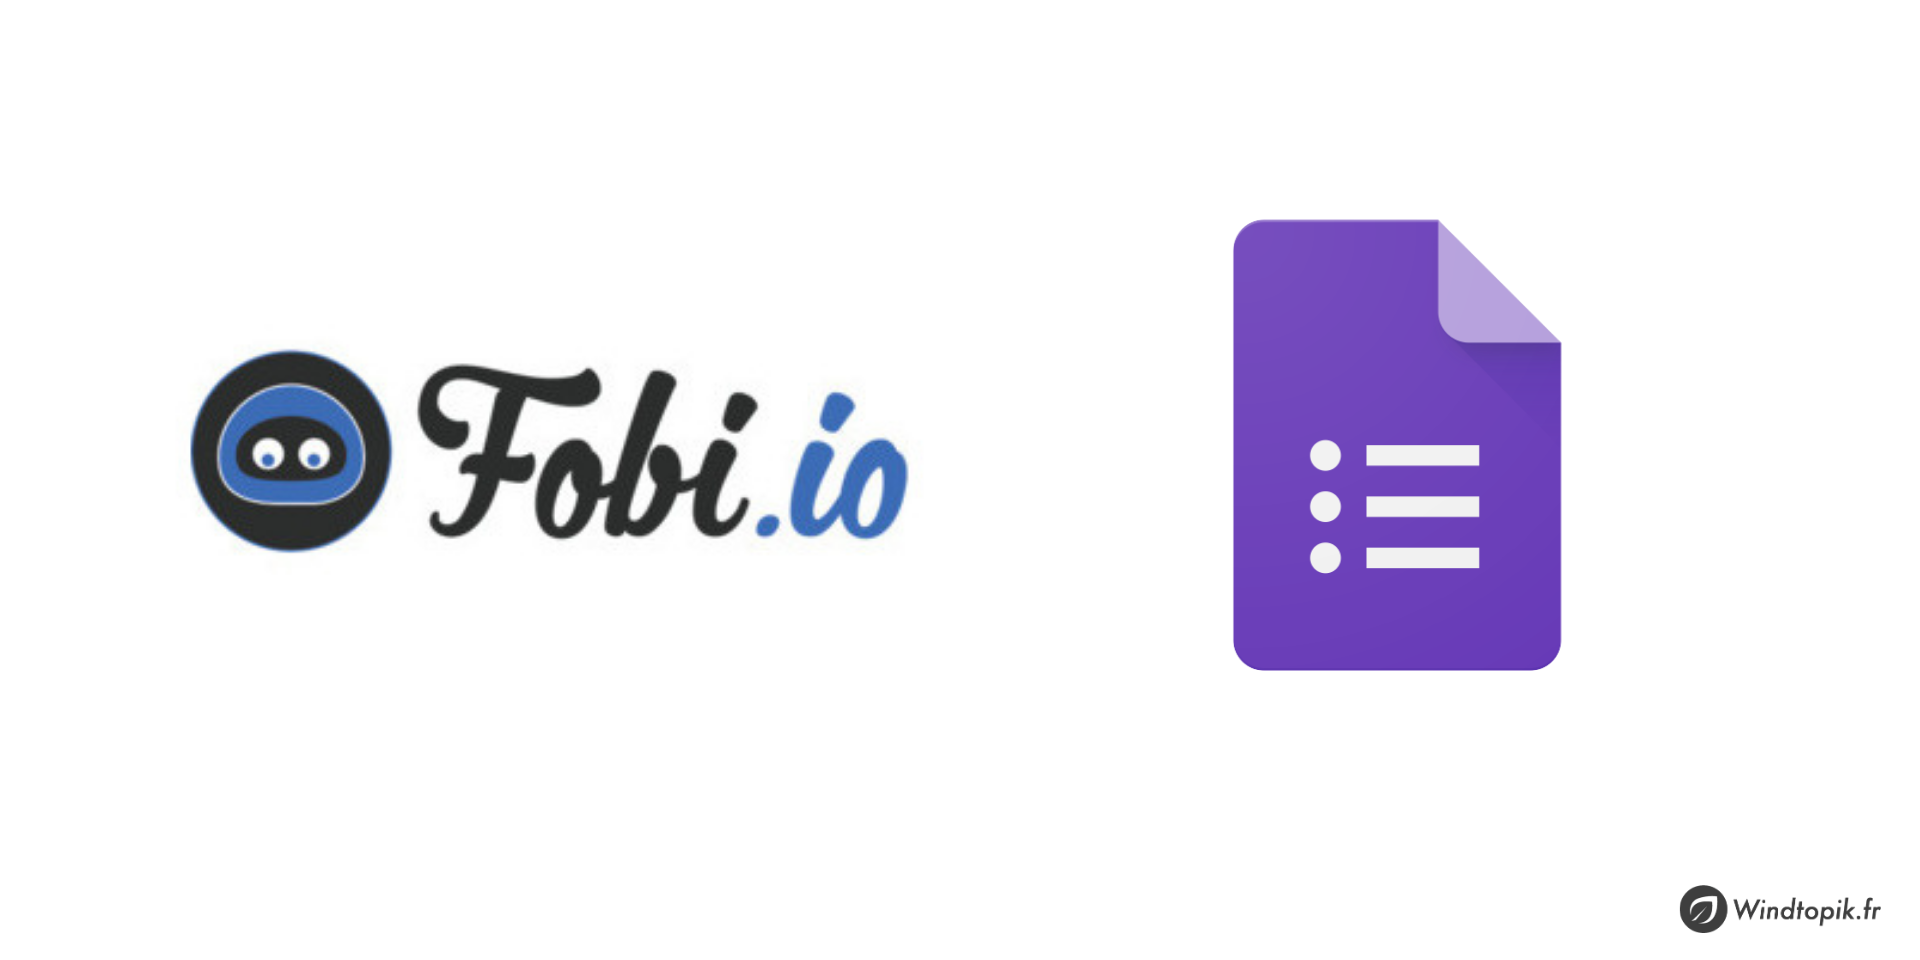 fobi.io-forms-windtopik